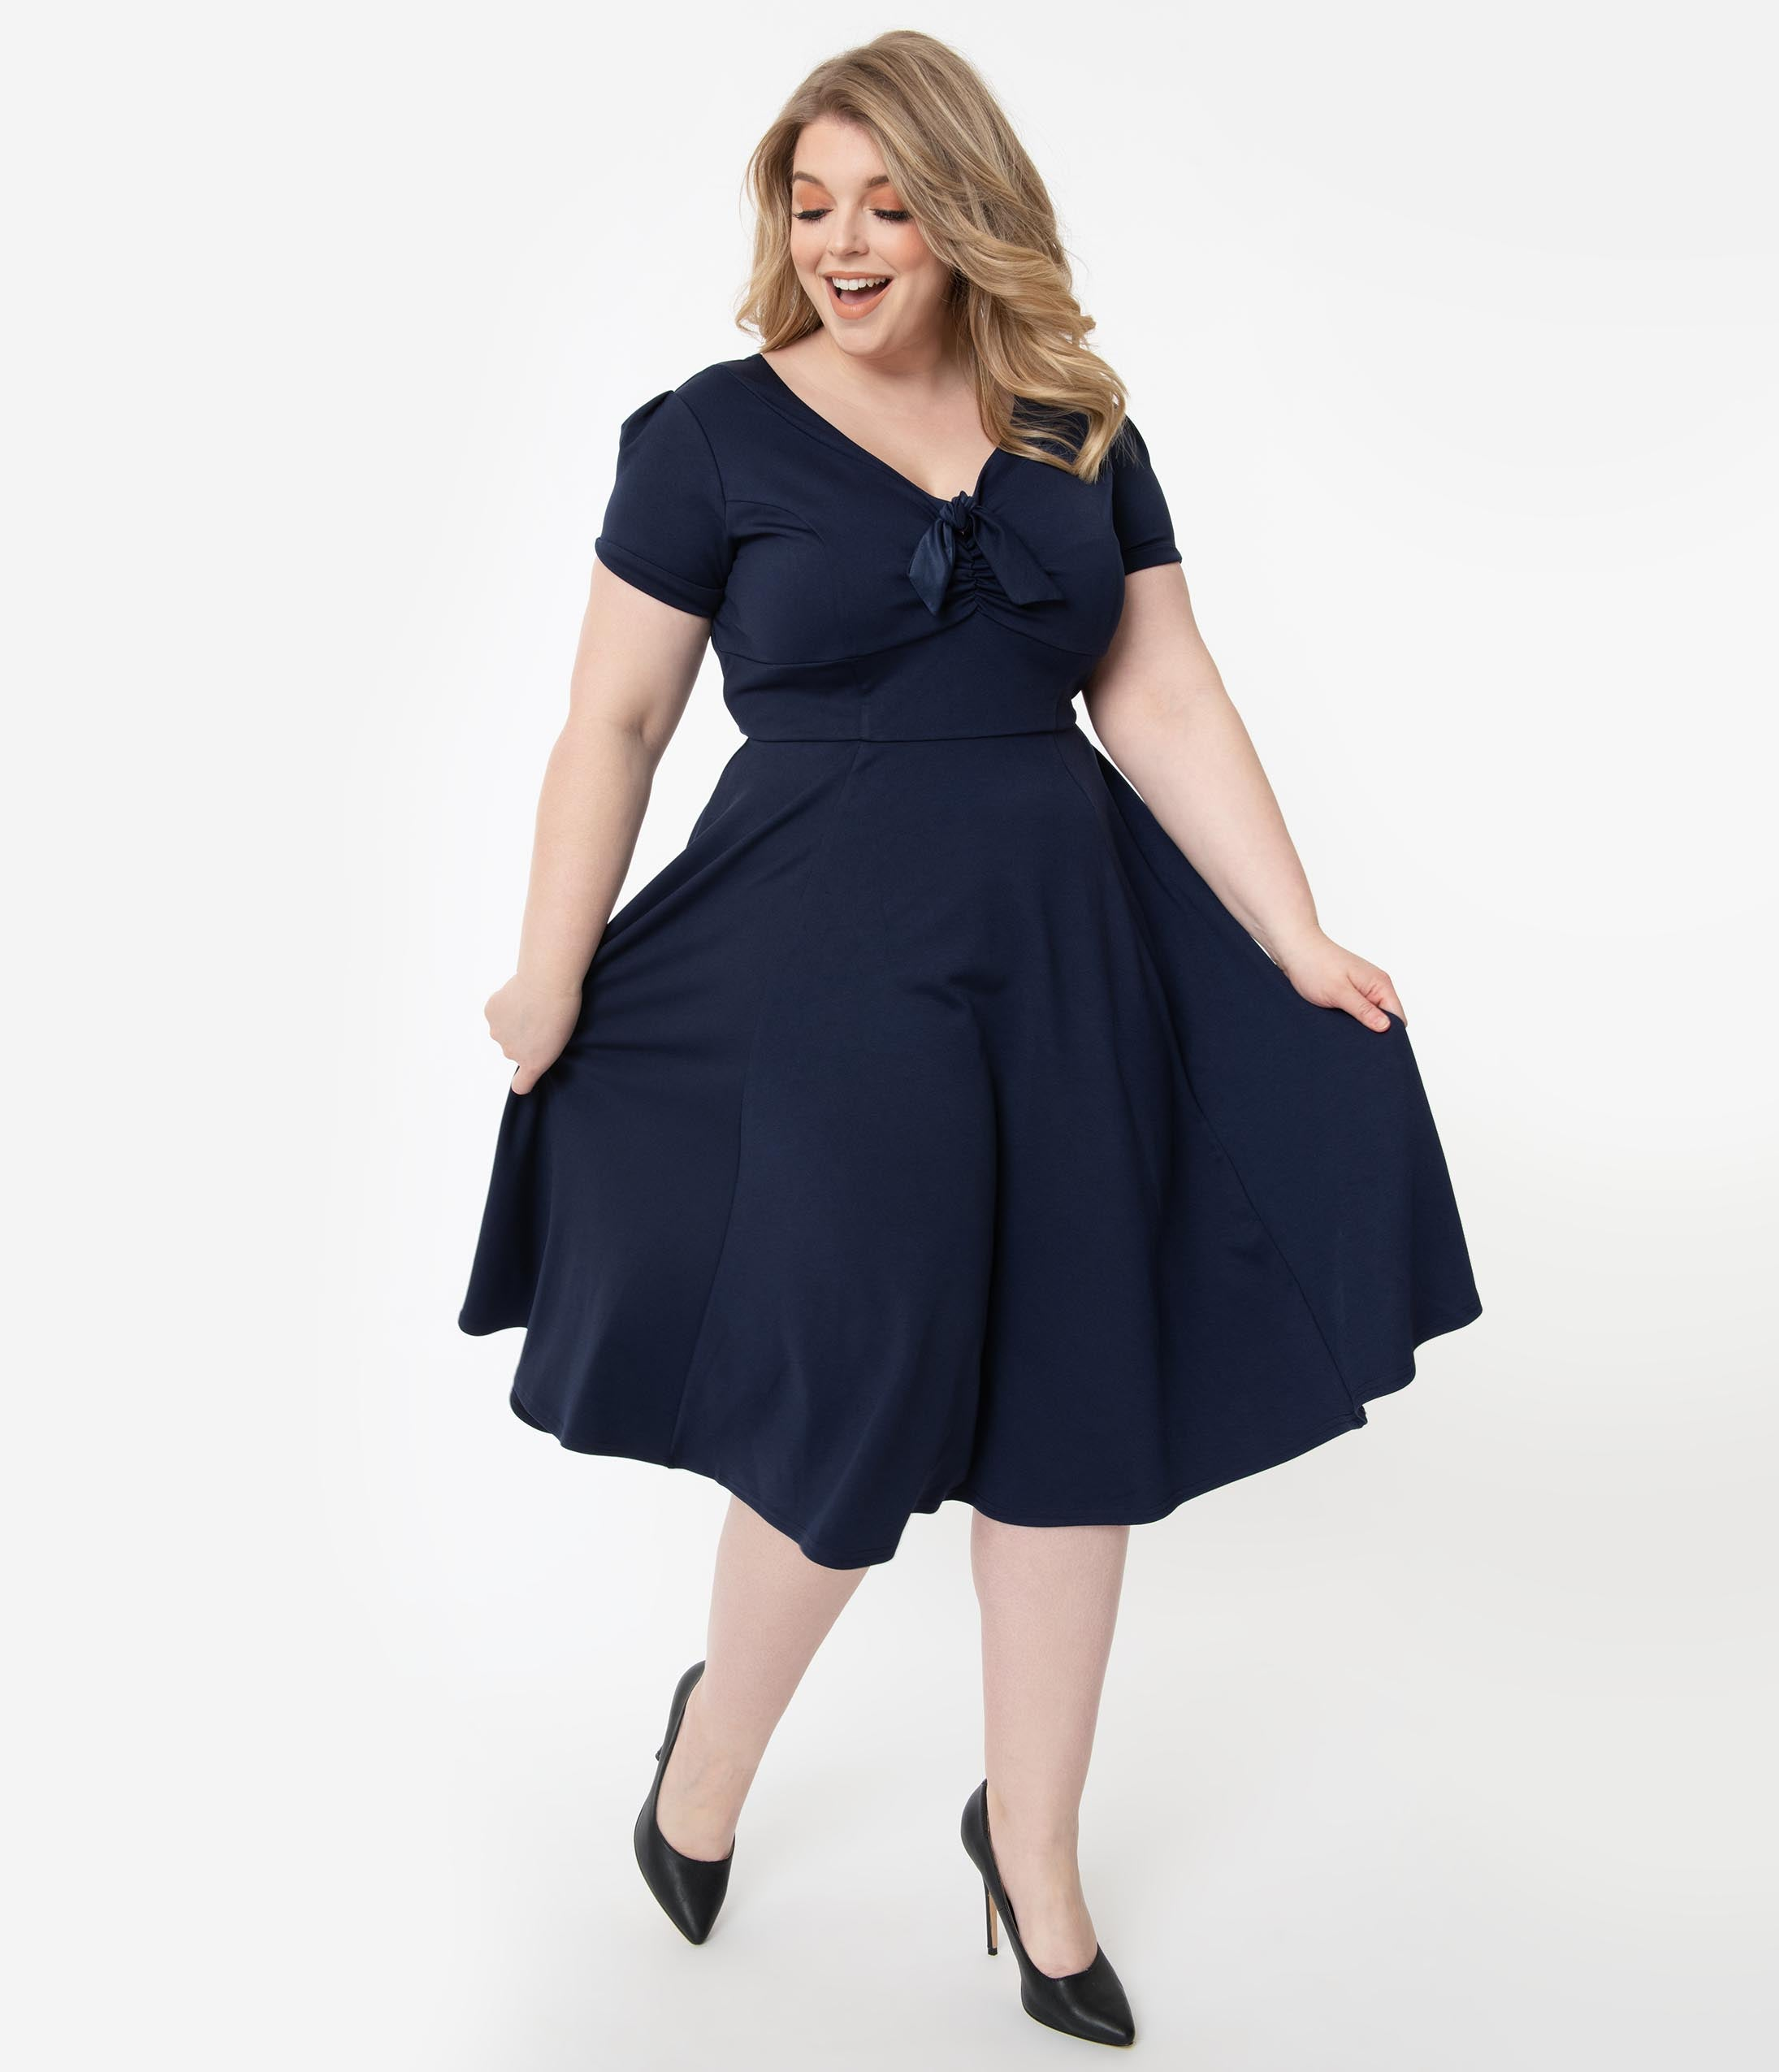 500 Vintage Style Dresses for Sale | Vintage Inspired Dresses 1940S Style Navy Blue Natalie Swing Dress $78.00 AT vintagedancer.com